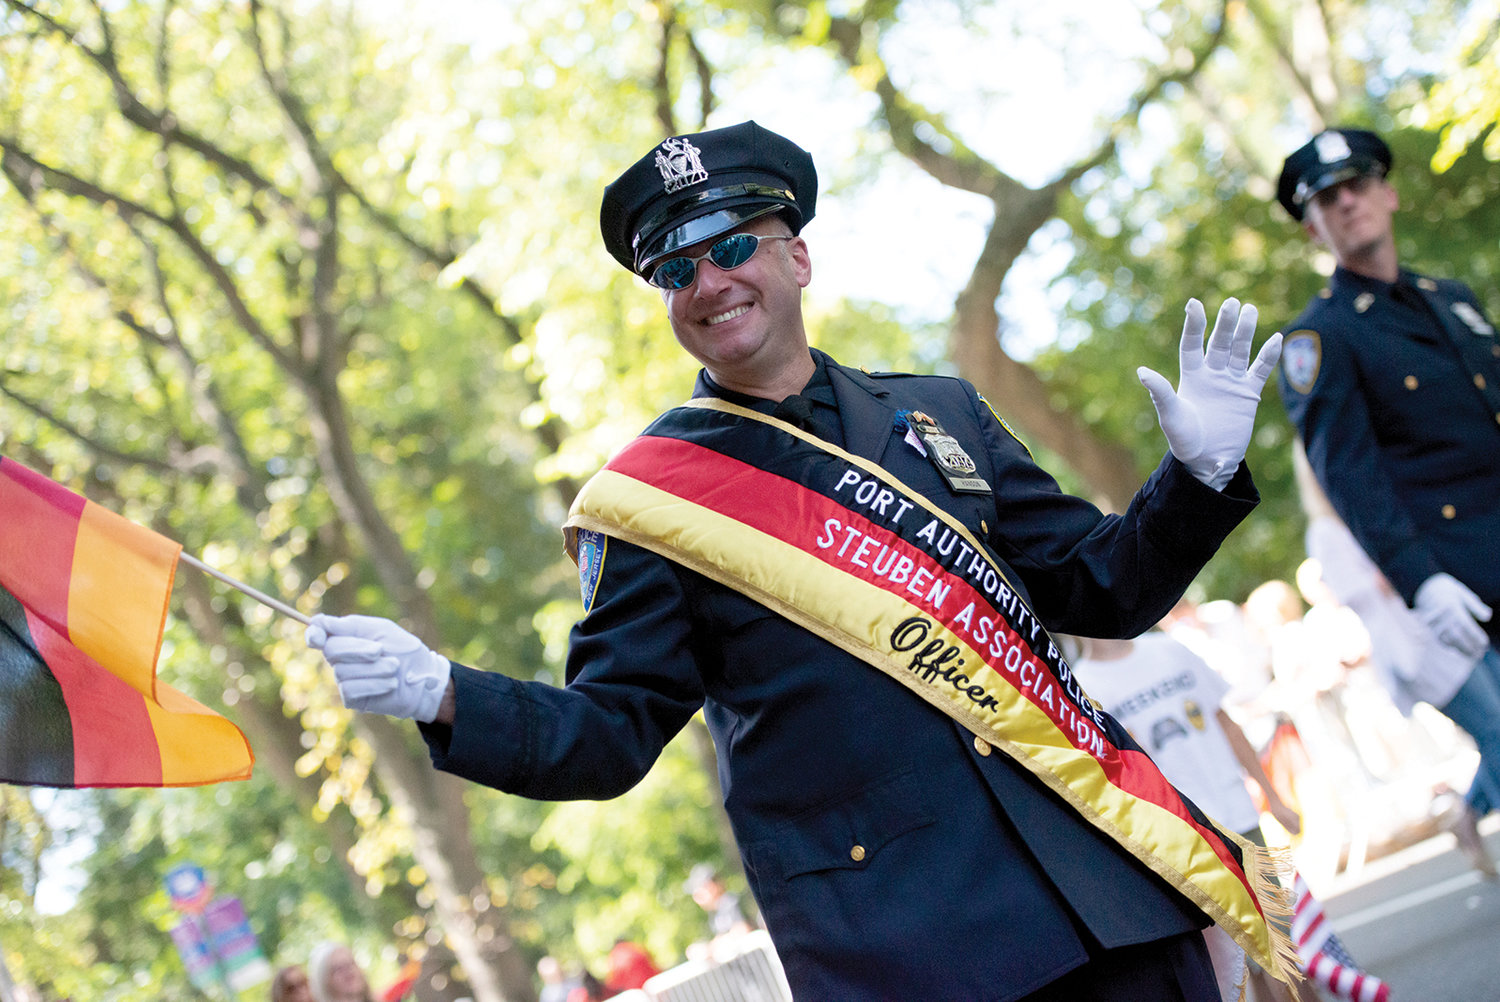 A Port Authority police officer wears a sash matching the colors of the German flag he's waving.